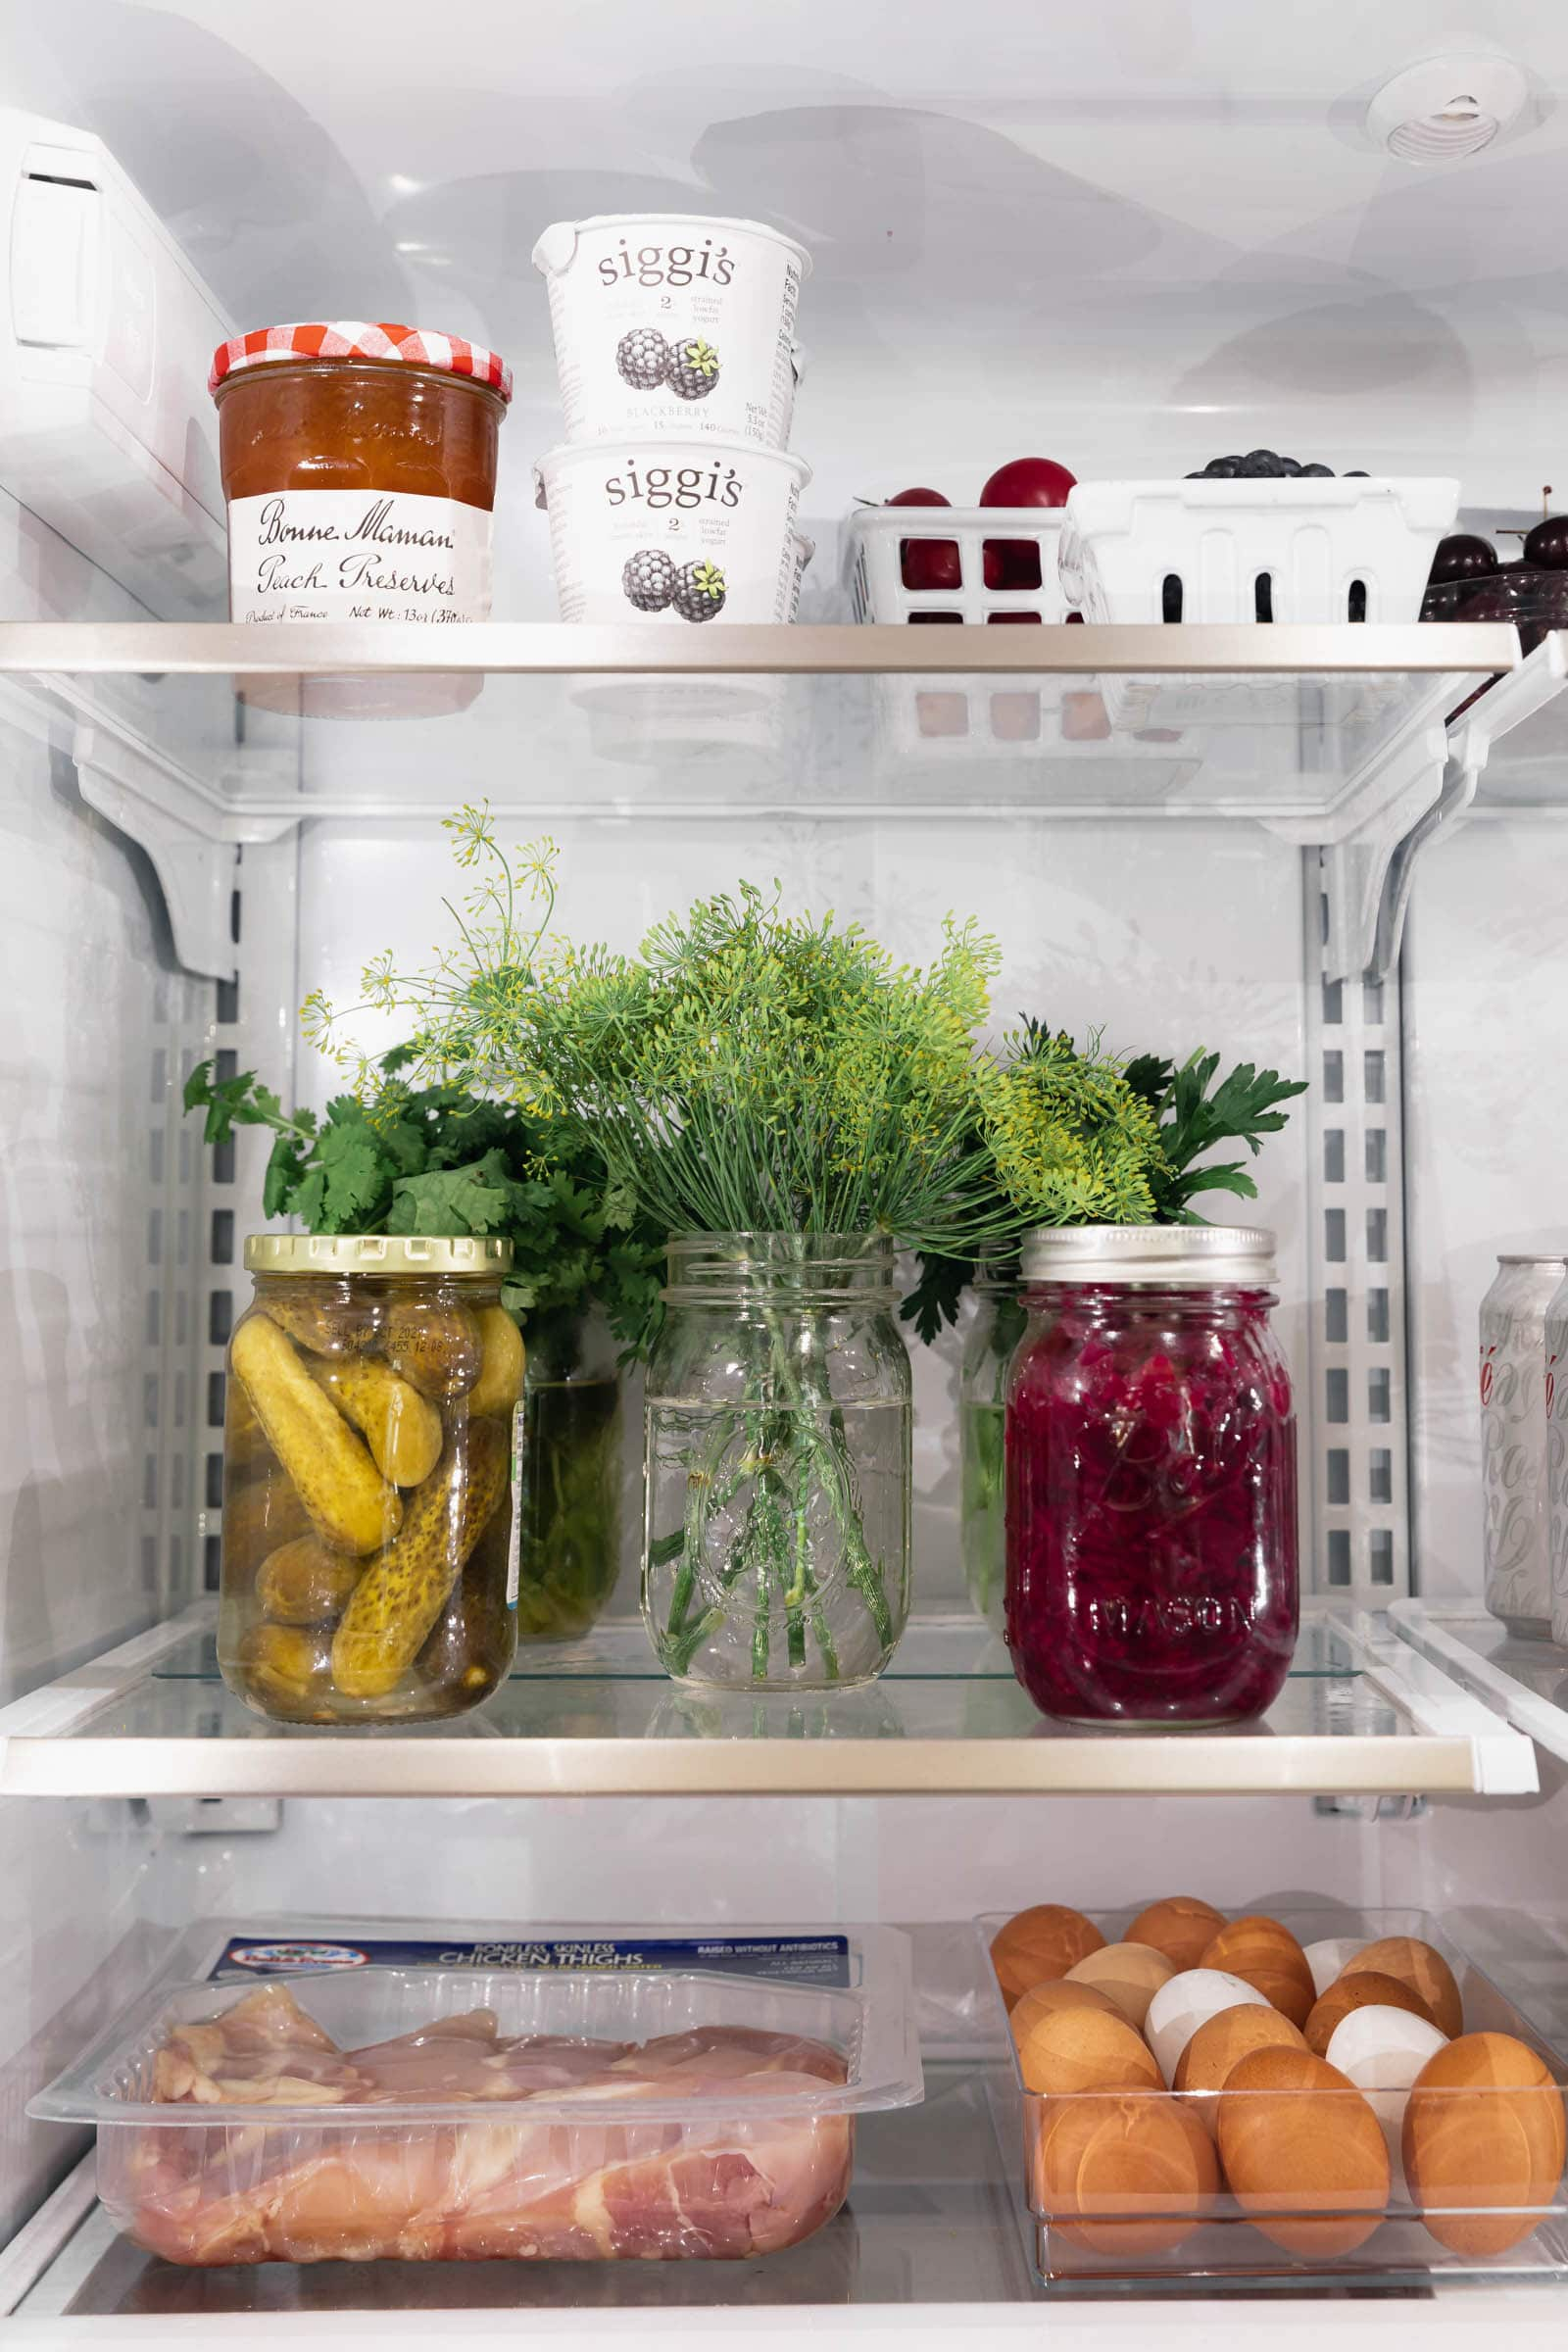 organized fridge with fruits and veggies and meat